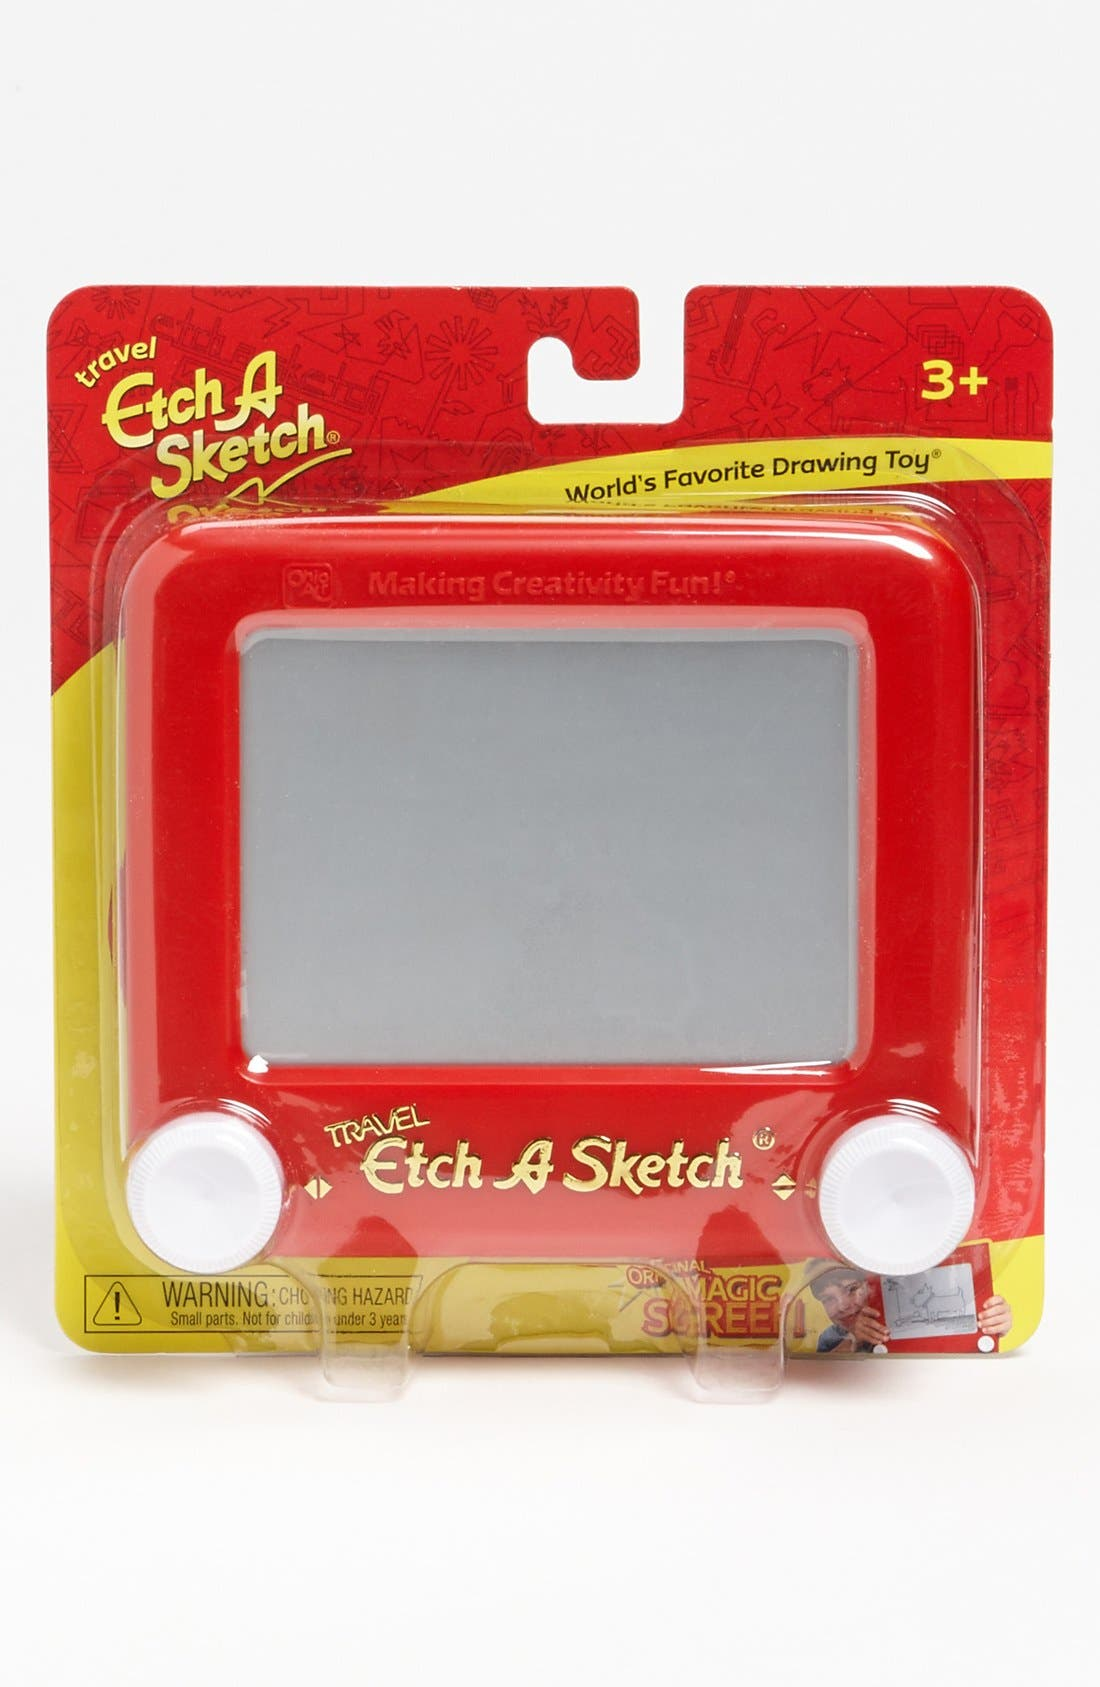 Alternate Image 1 Selected - Etch a Sketch 'Travel' Etch a Sketch